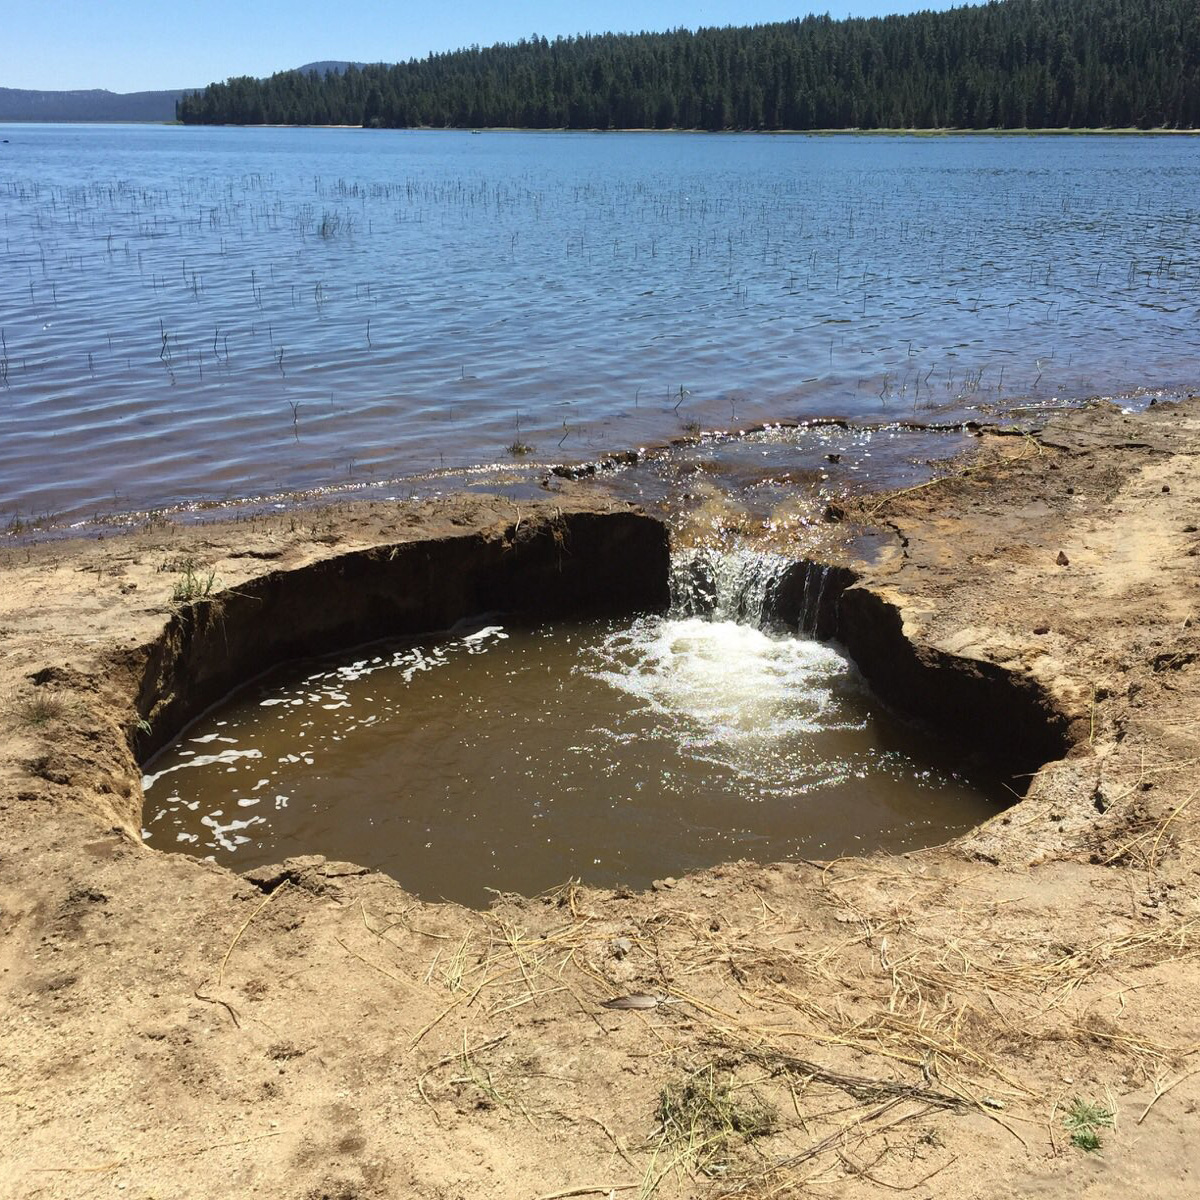 Sinkhole at Wickiup Reservoir